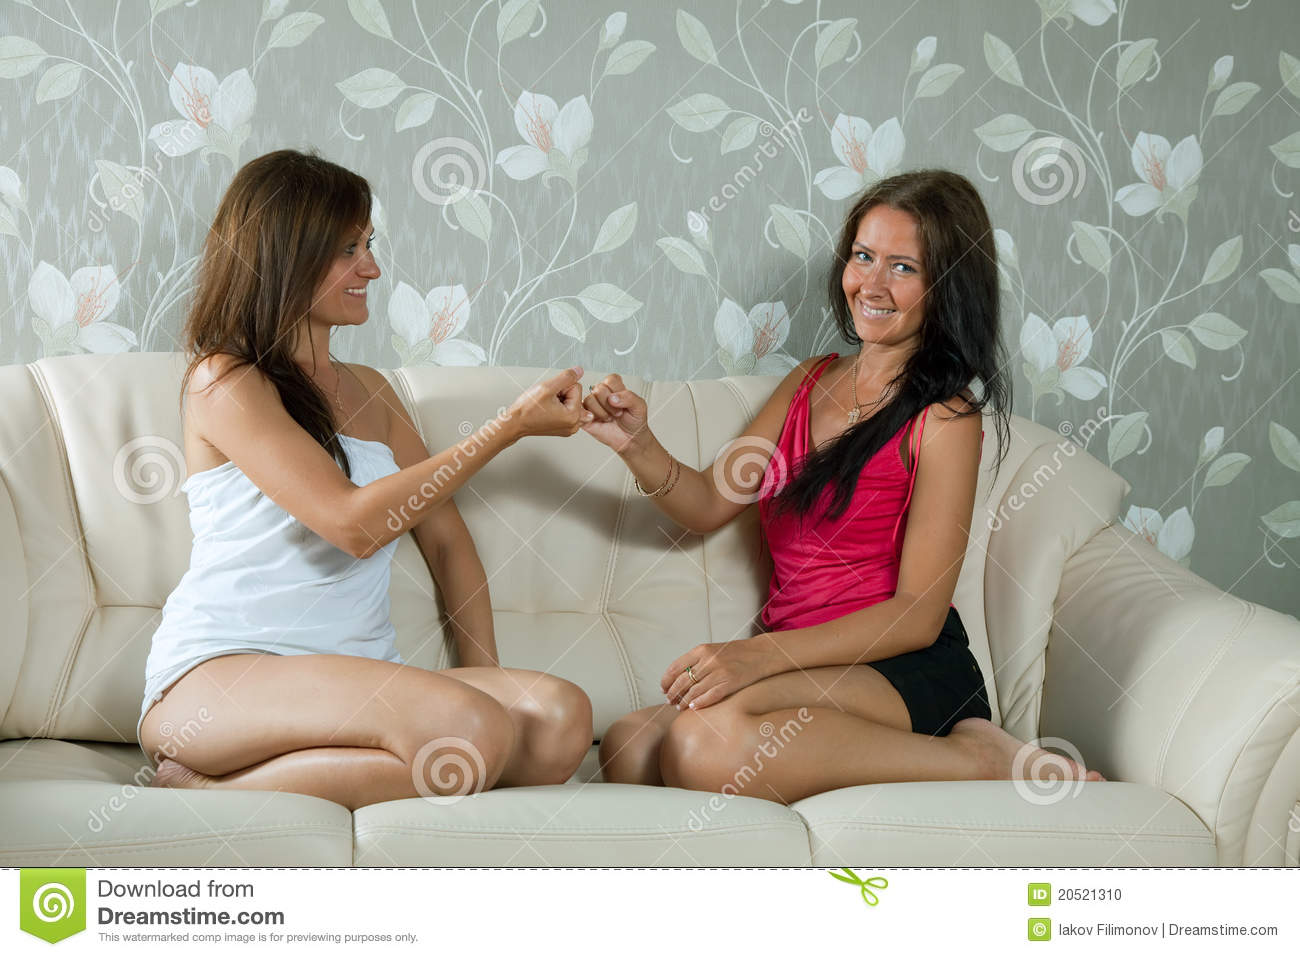 Women having reconciliation in home